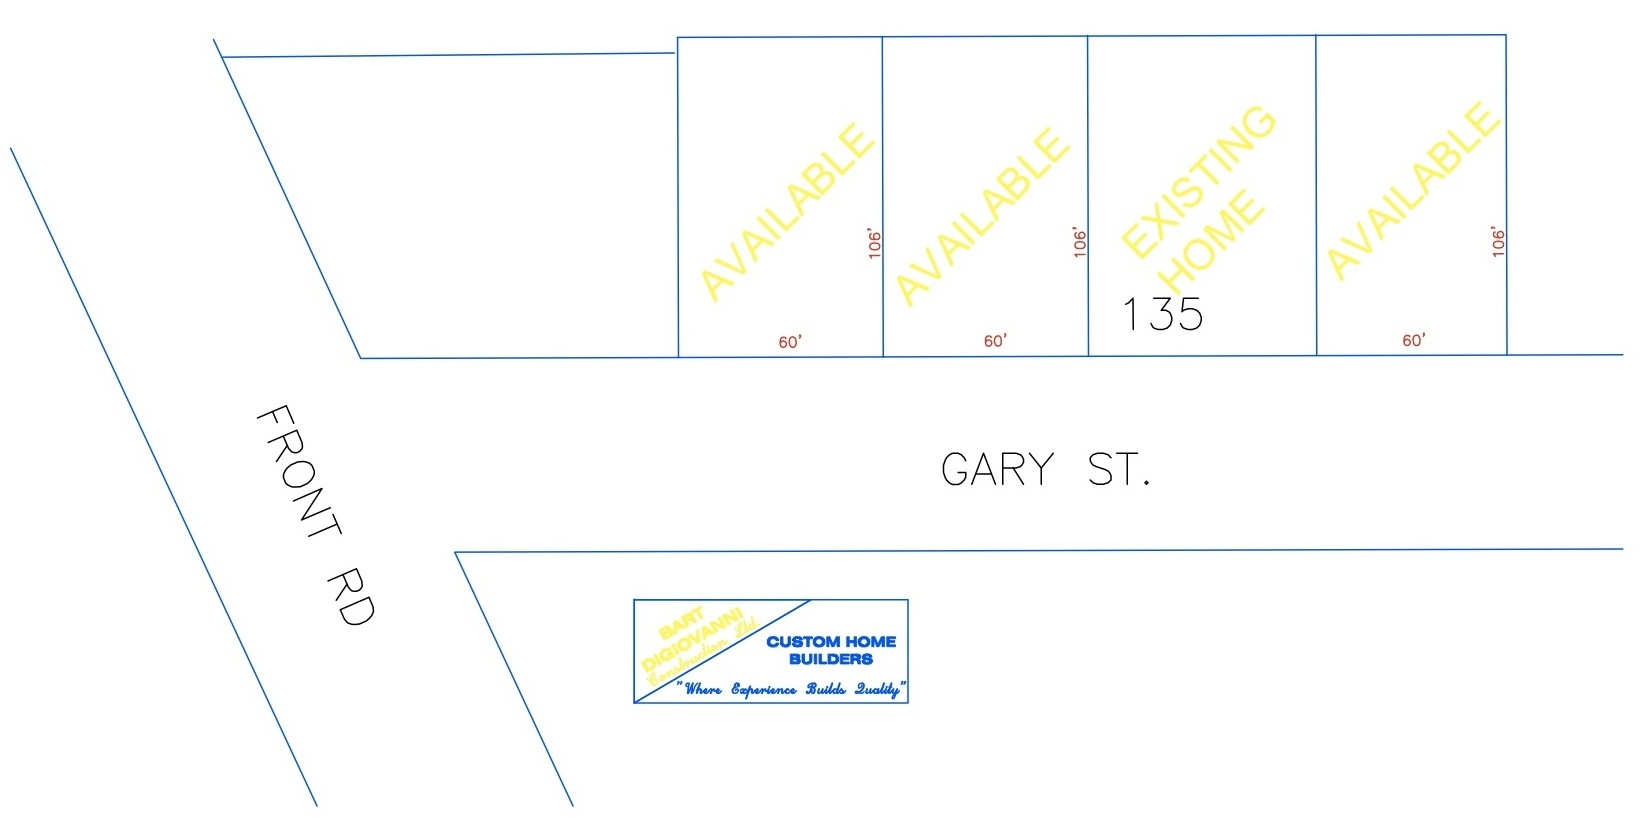 Gary St Lots diagram